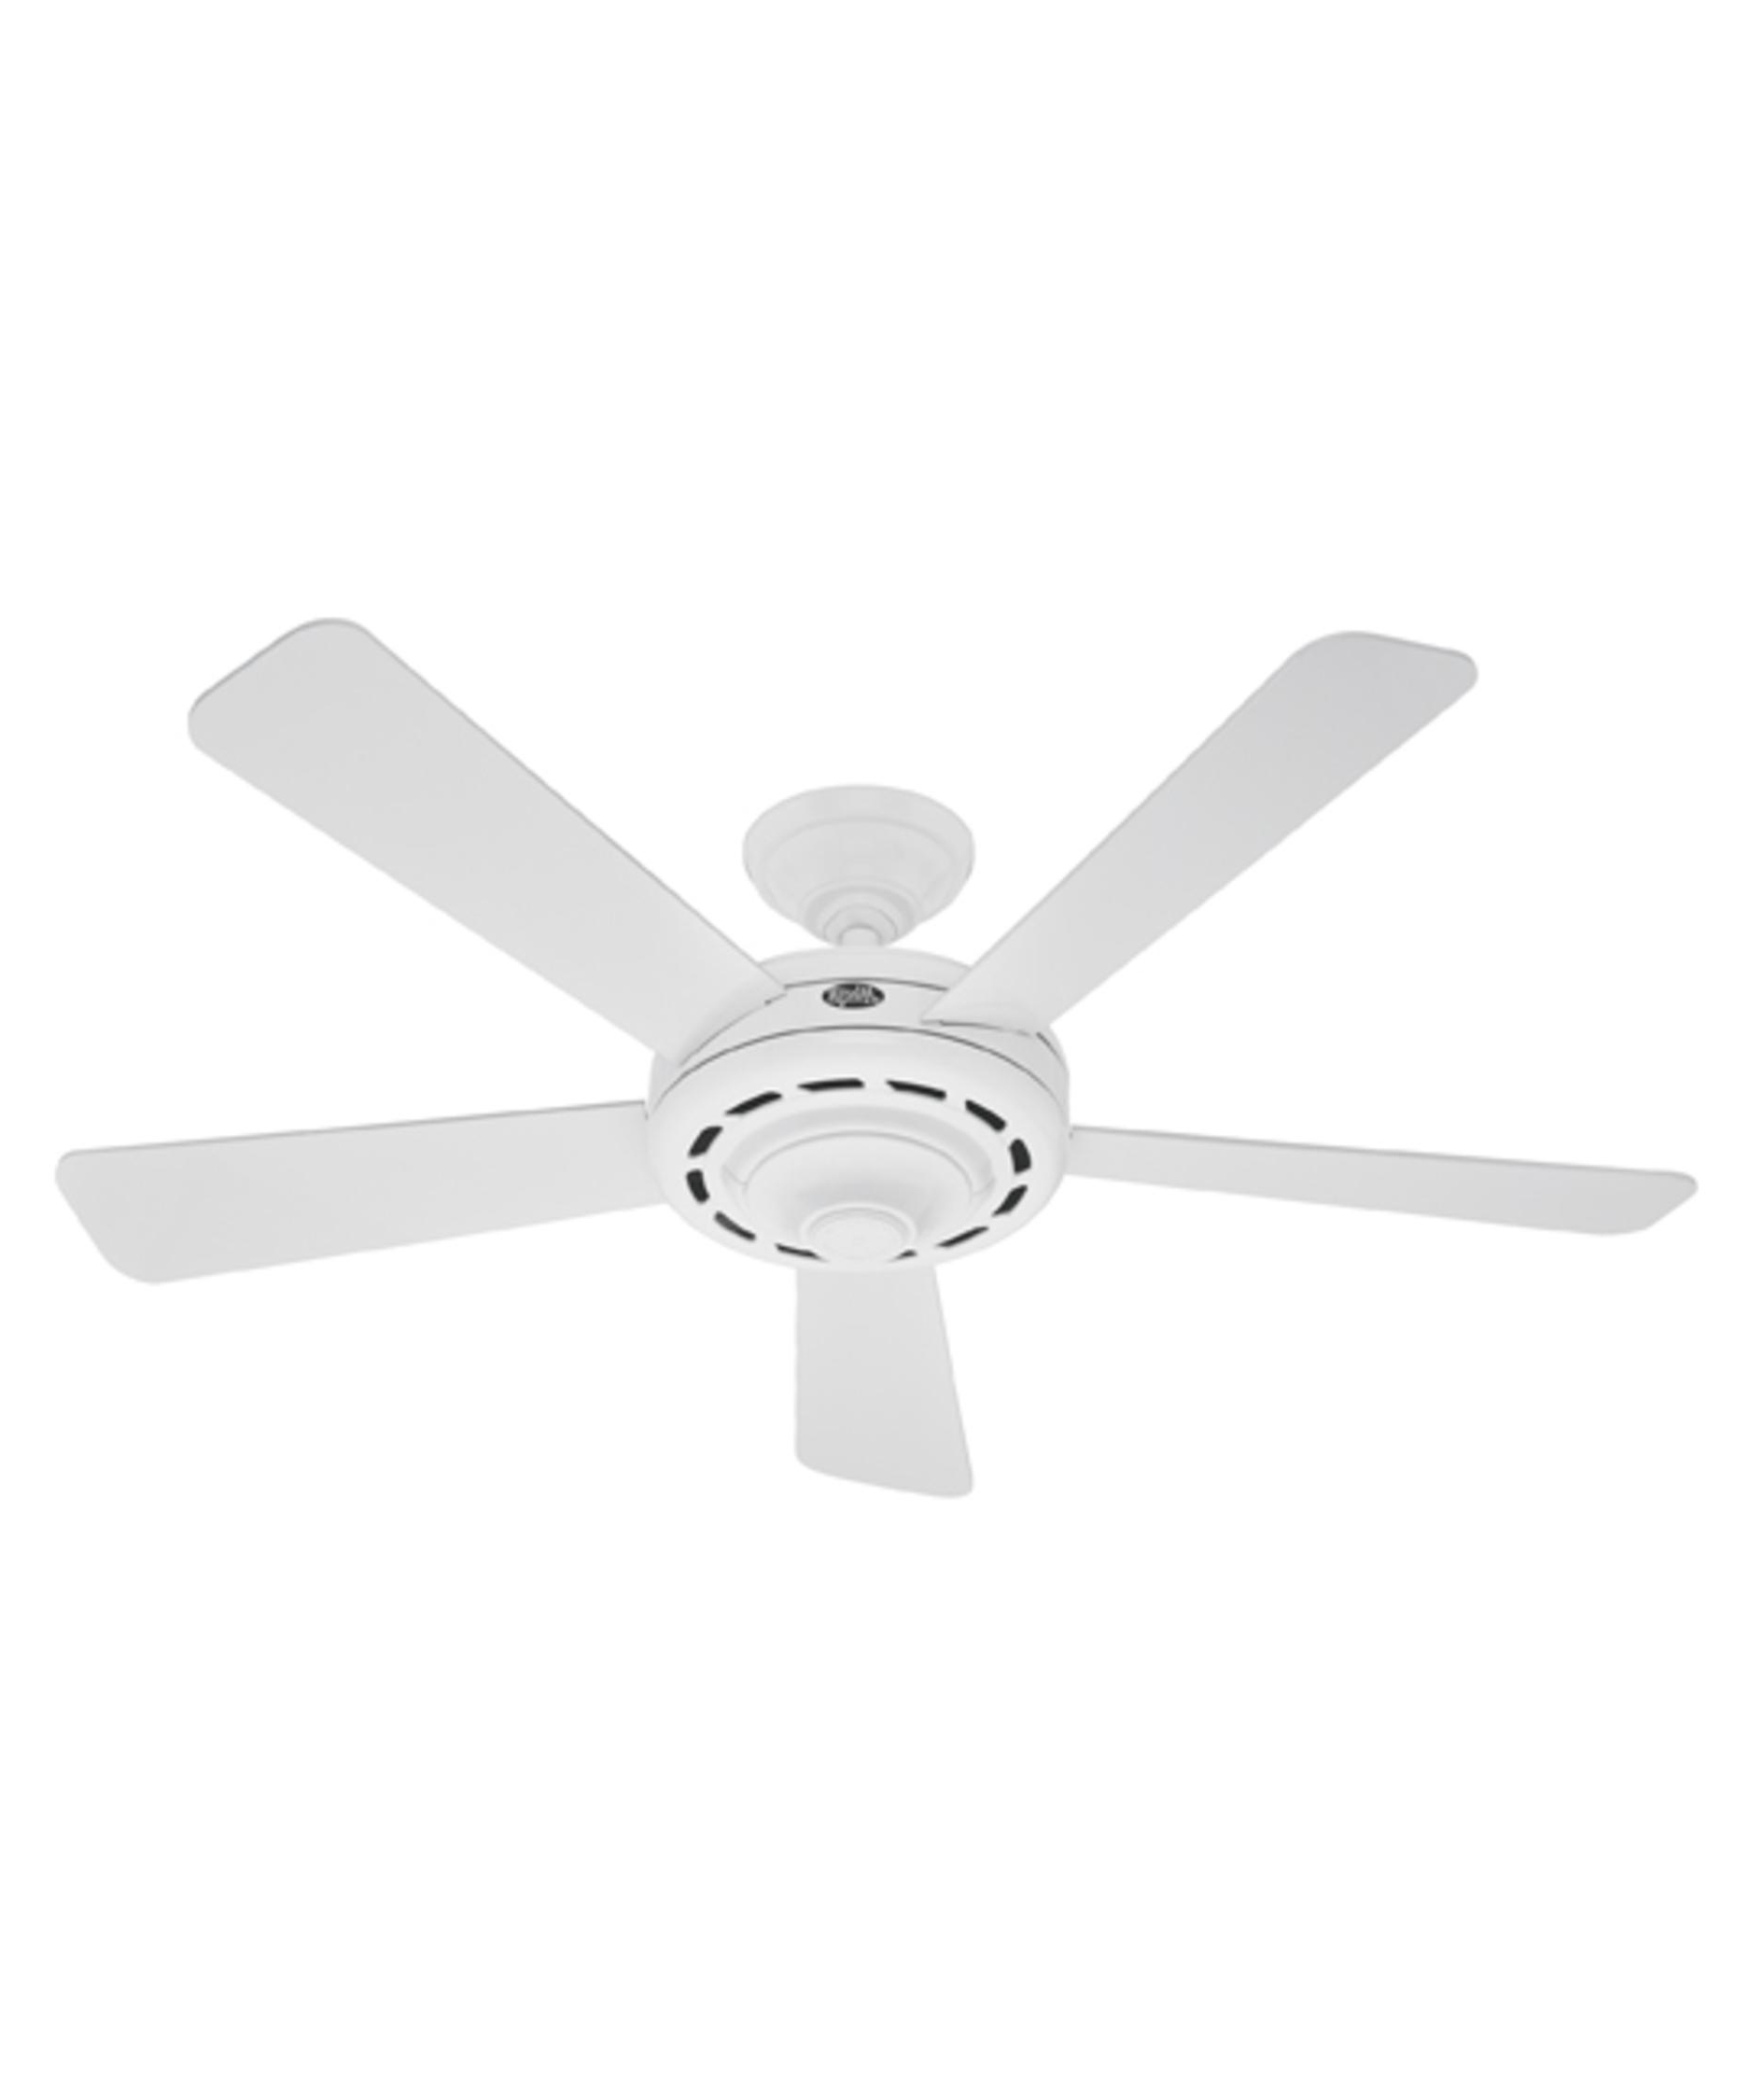 Most Recently Released Energy Star Outdoor Ceiling Fans With Light Throughout Hunter Fan 25866 Dimensions 52 Inch 5 Blade Ceiling Fan (View 10 of 20)